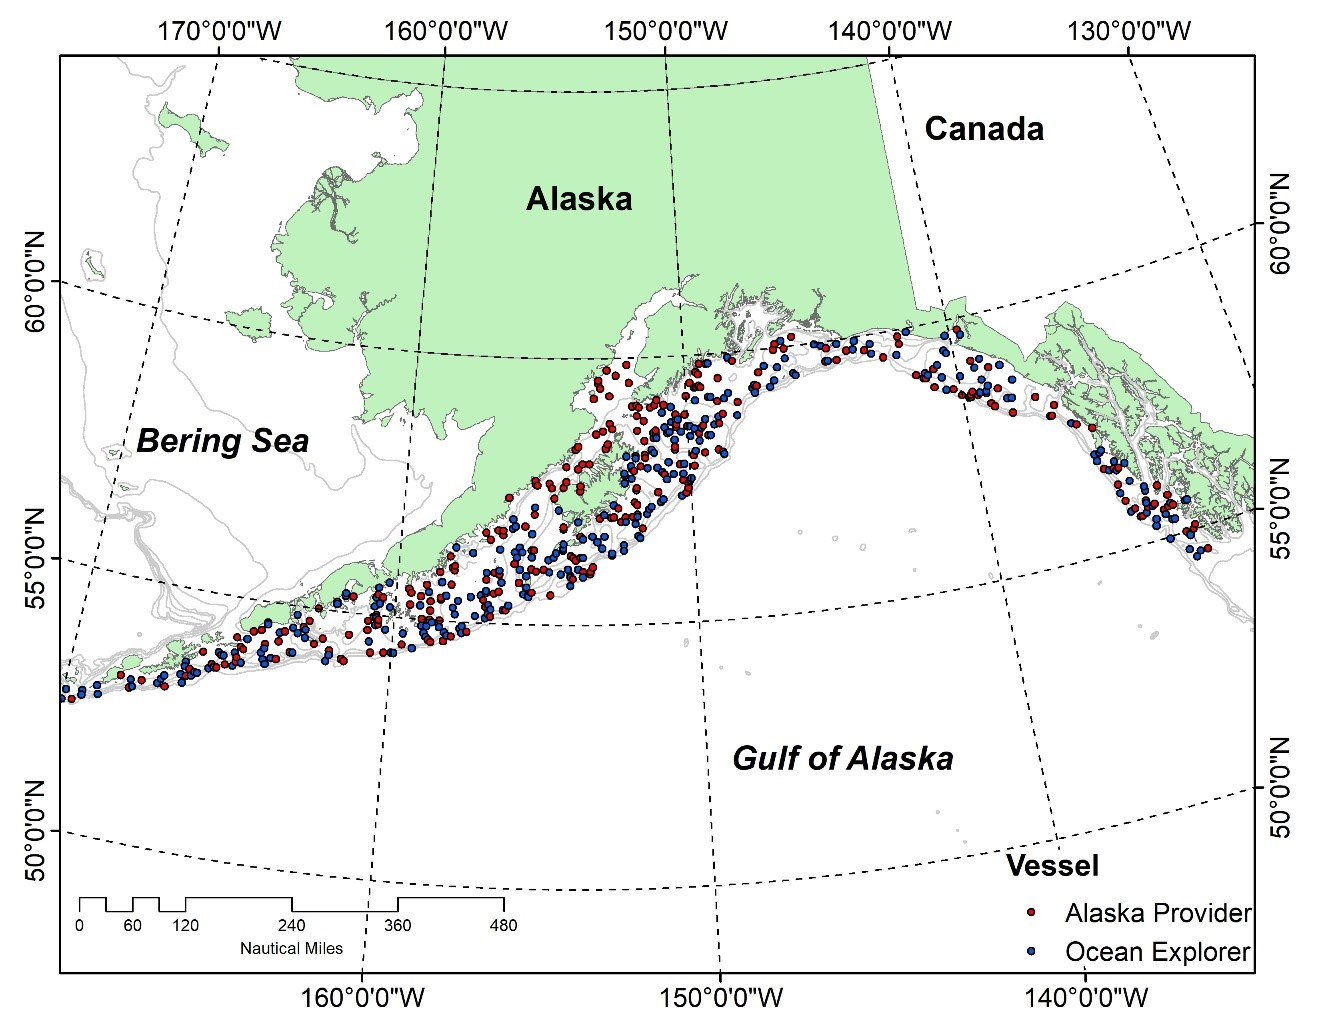 Map of Gulf of Alaska with proposed sample stations marked.